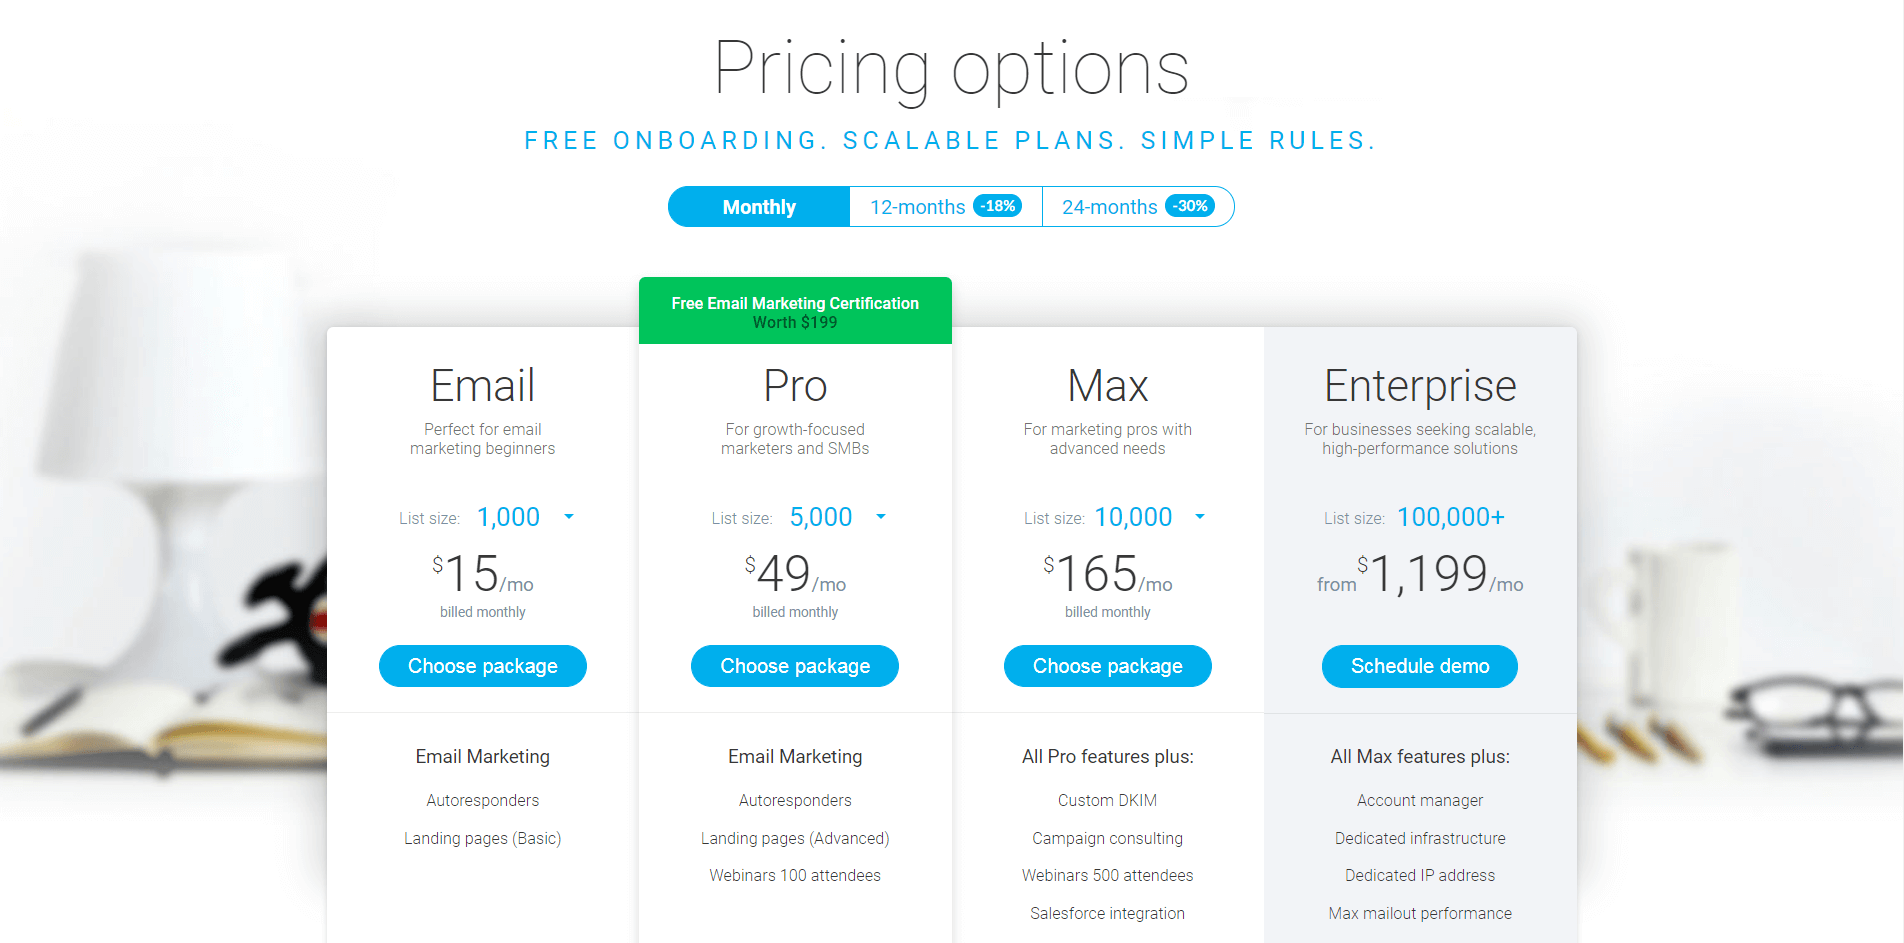 The GetResponse pricing options.